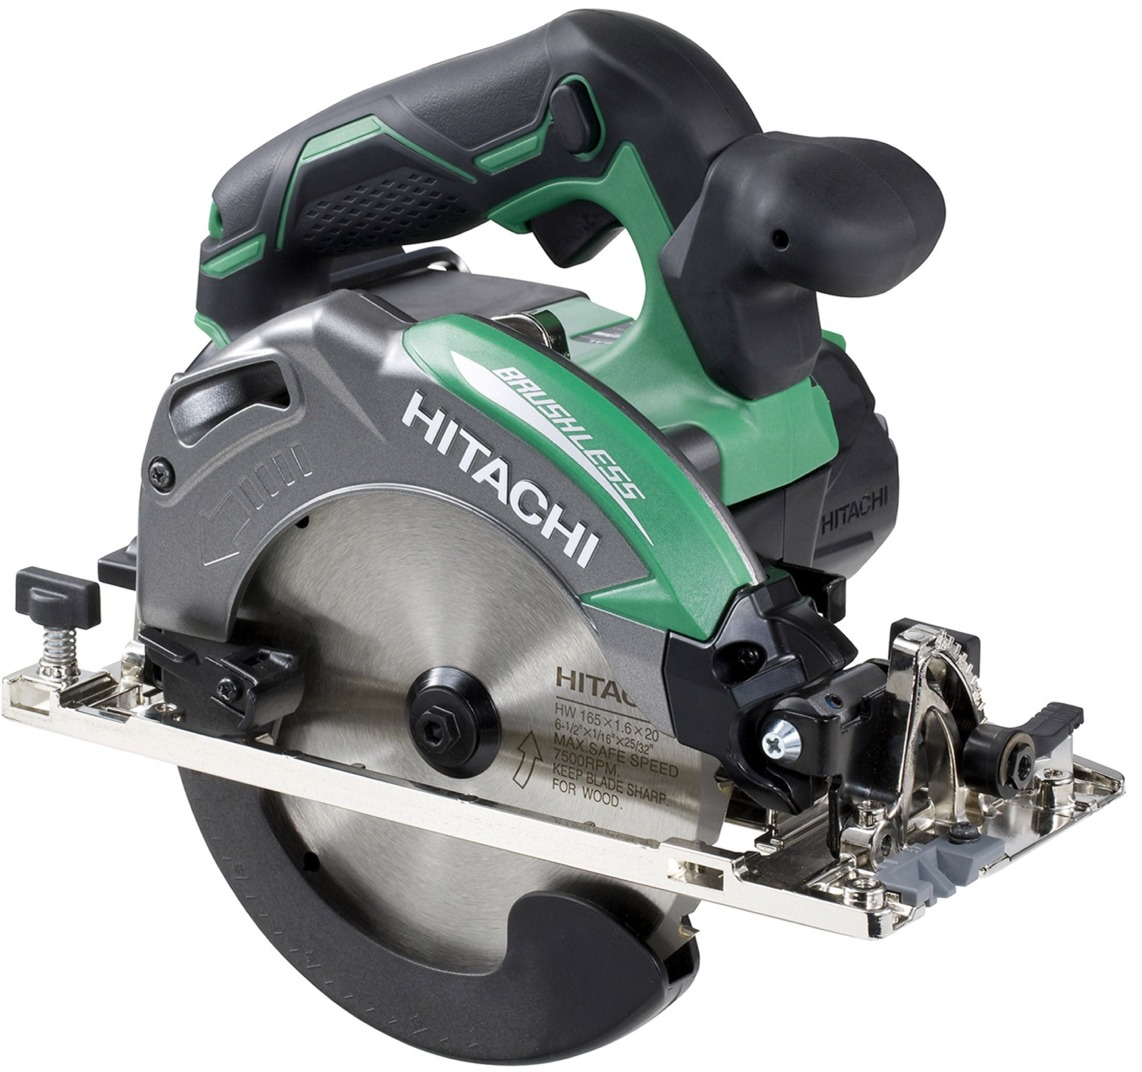 Hitachi bare tools hitachi 18v brushless 165mm circular saw 165mm hitachi 18v brushless 165mm circular saw 165mm bare tool greentooth Choice Image